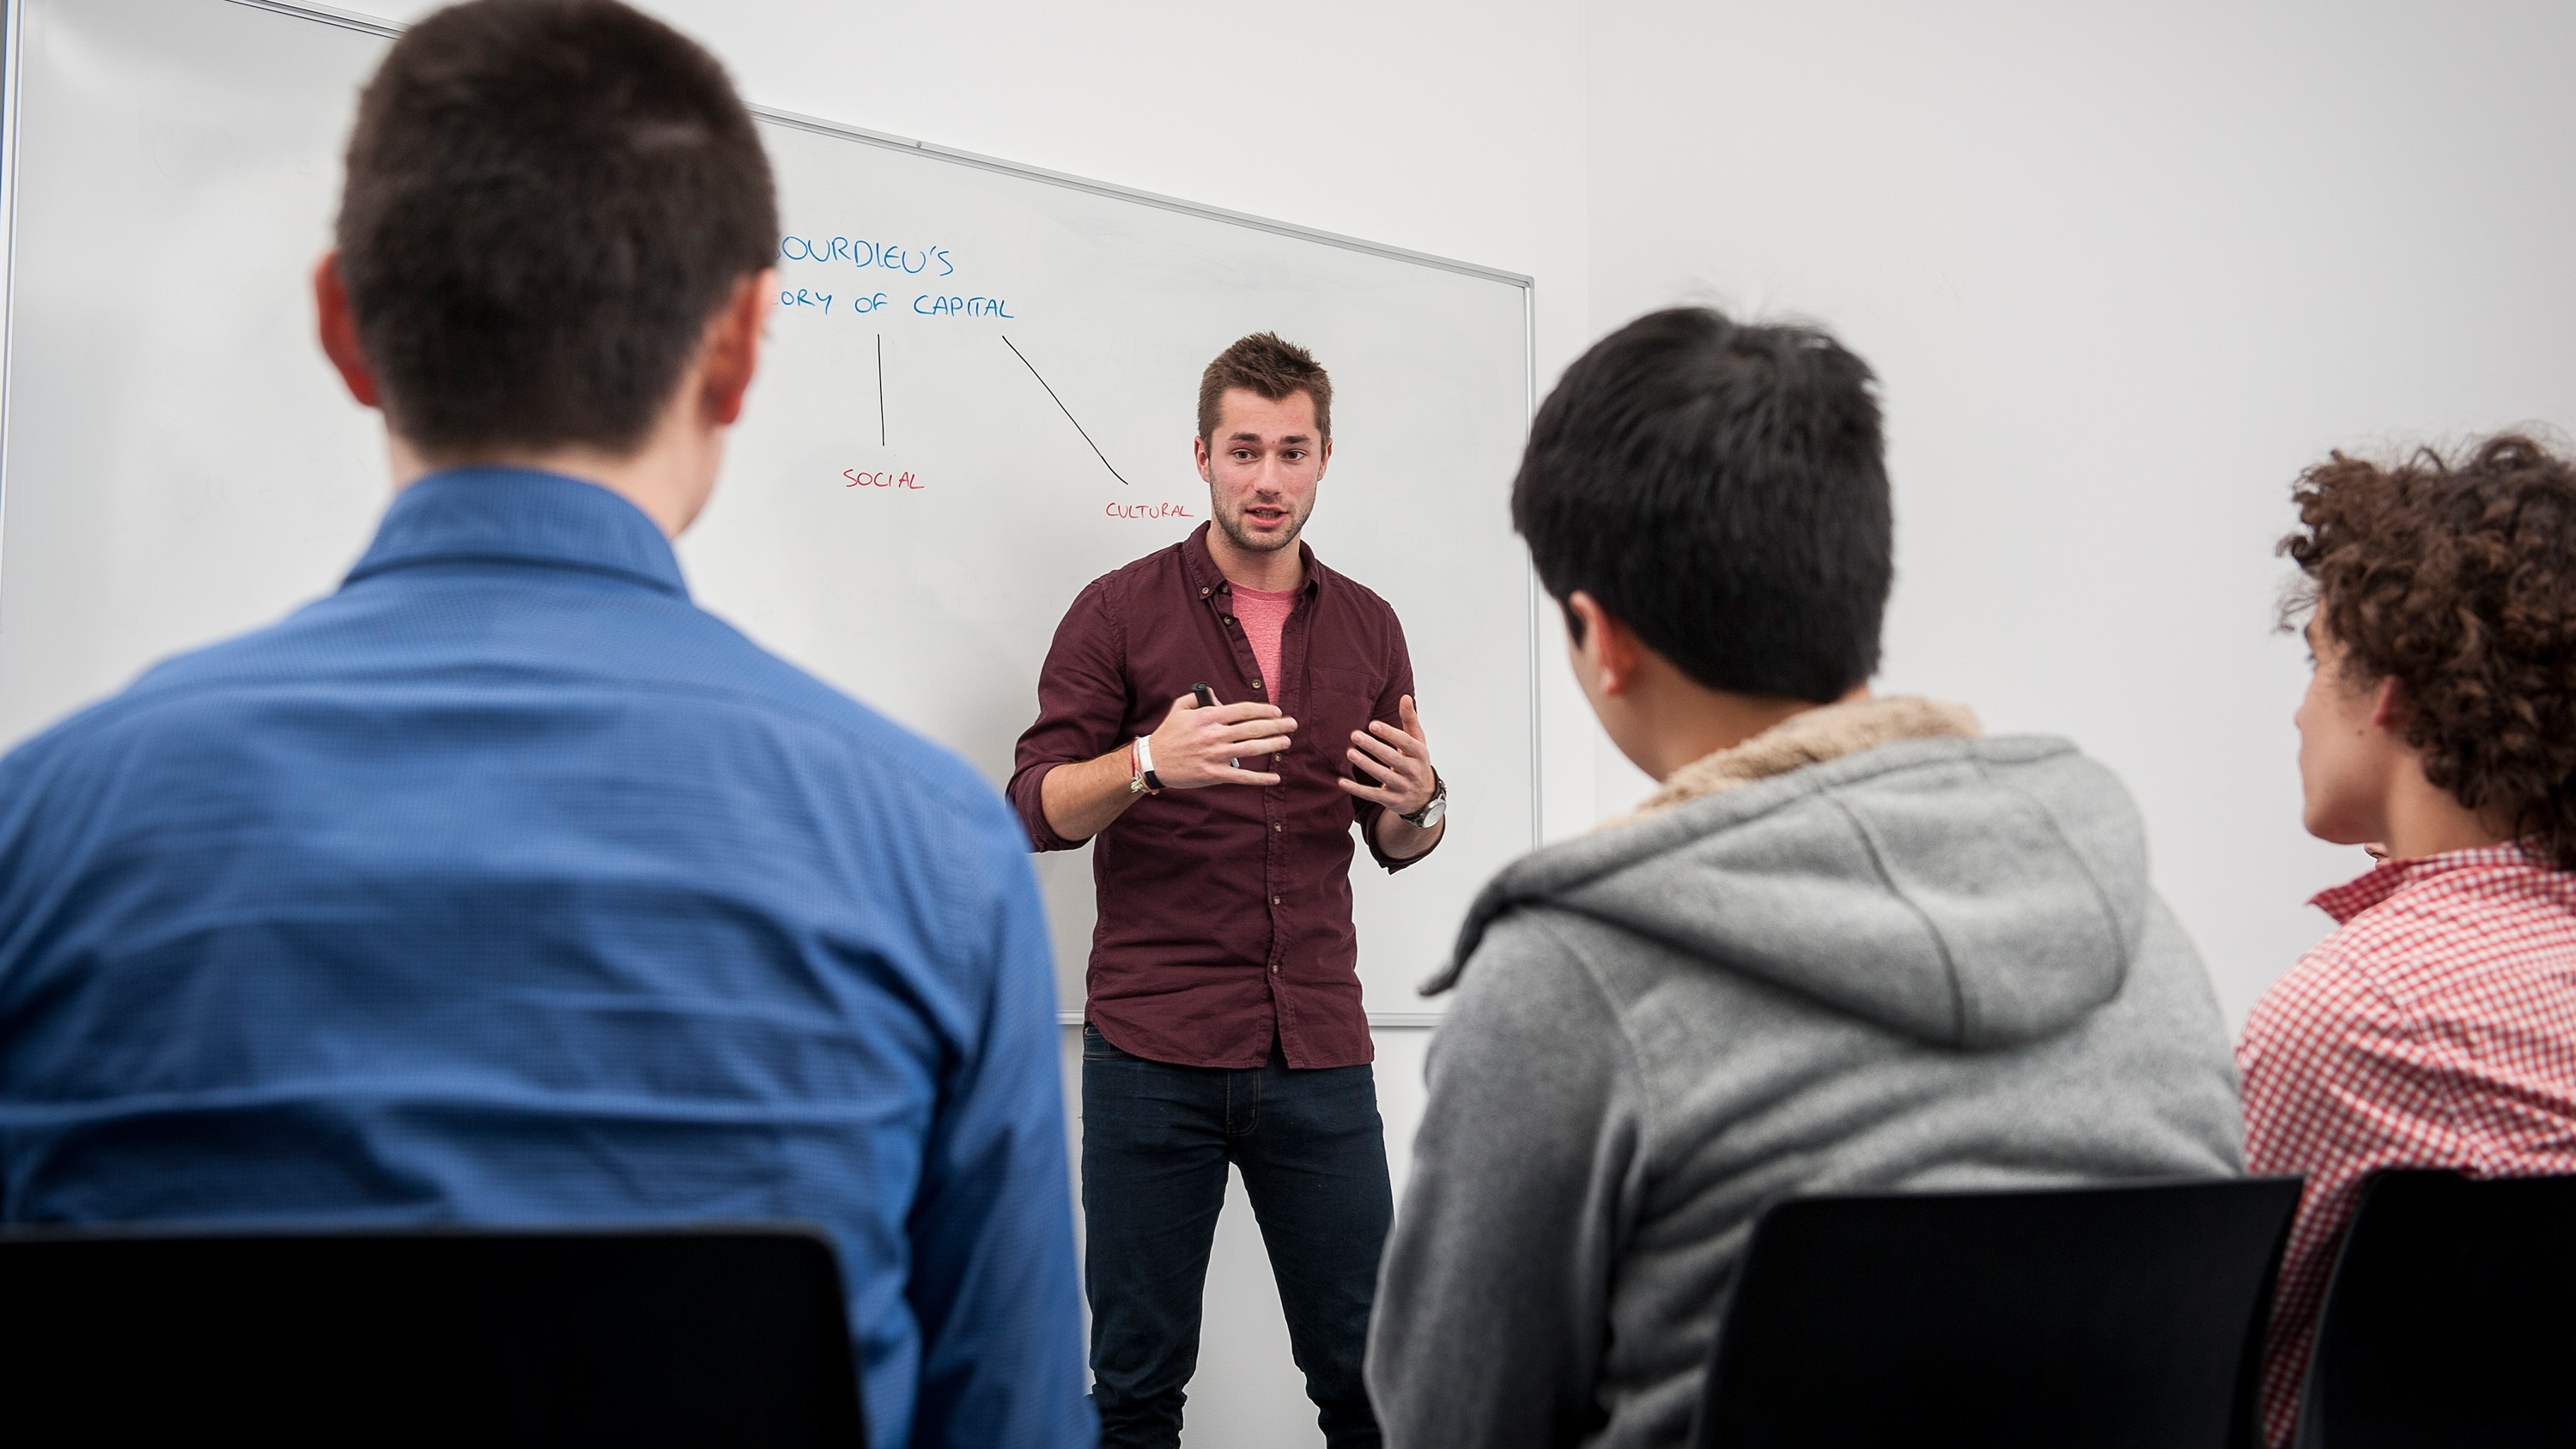 Student standing by a whiteboard delivering a presentation to three other students.